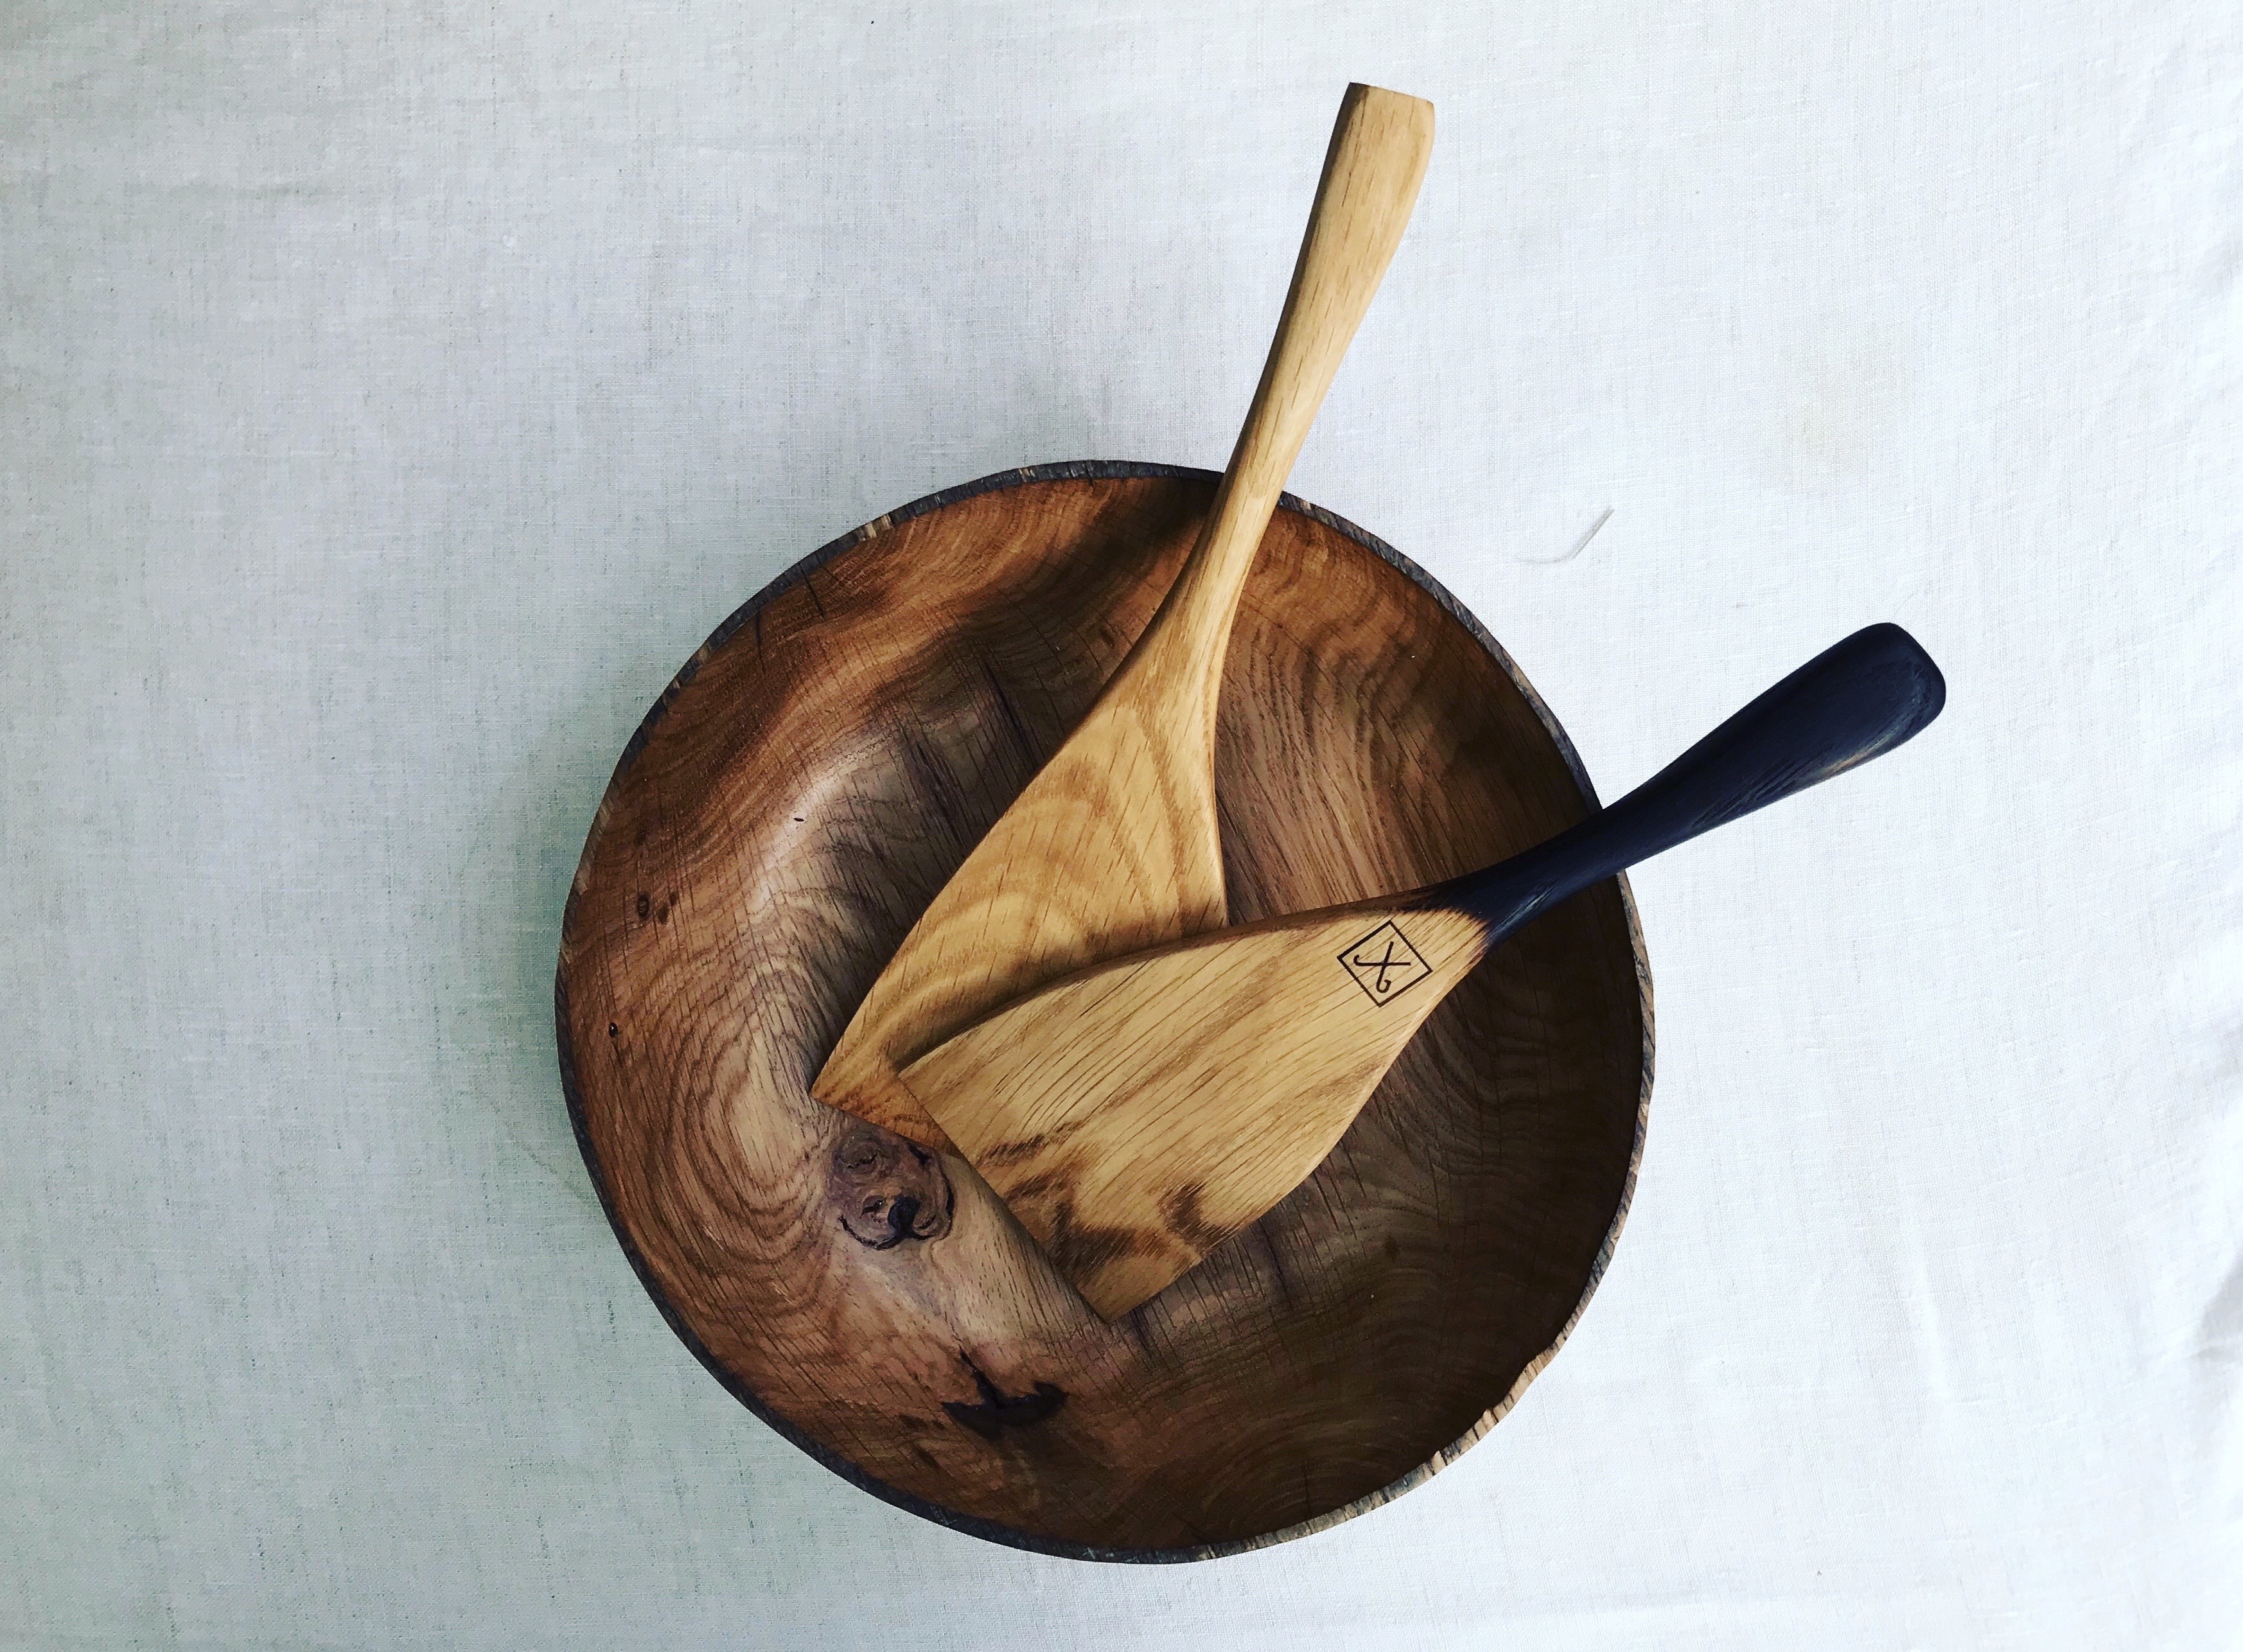 Hand carved oak bowl from oak by Jamie Gaunt. Wooden kitchen utensils handmade from oak with scorche